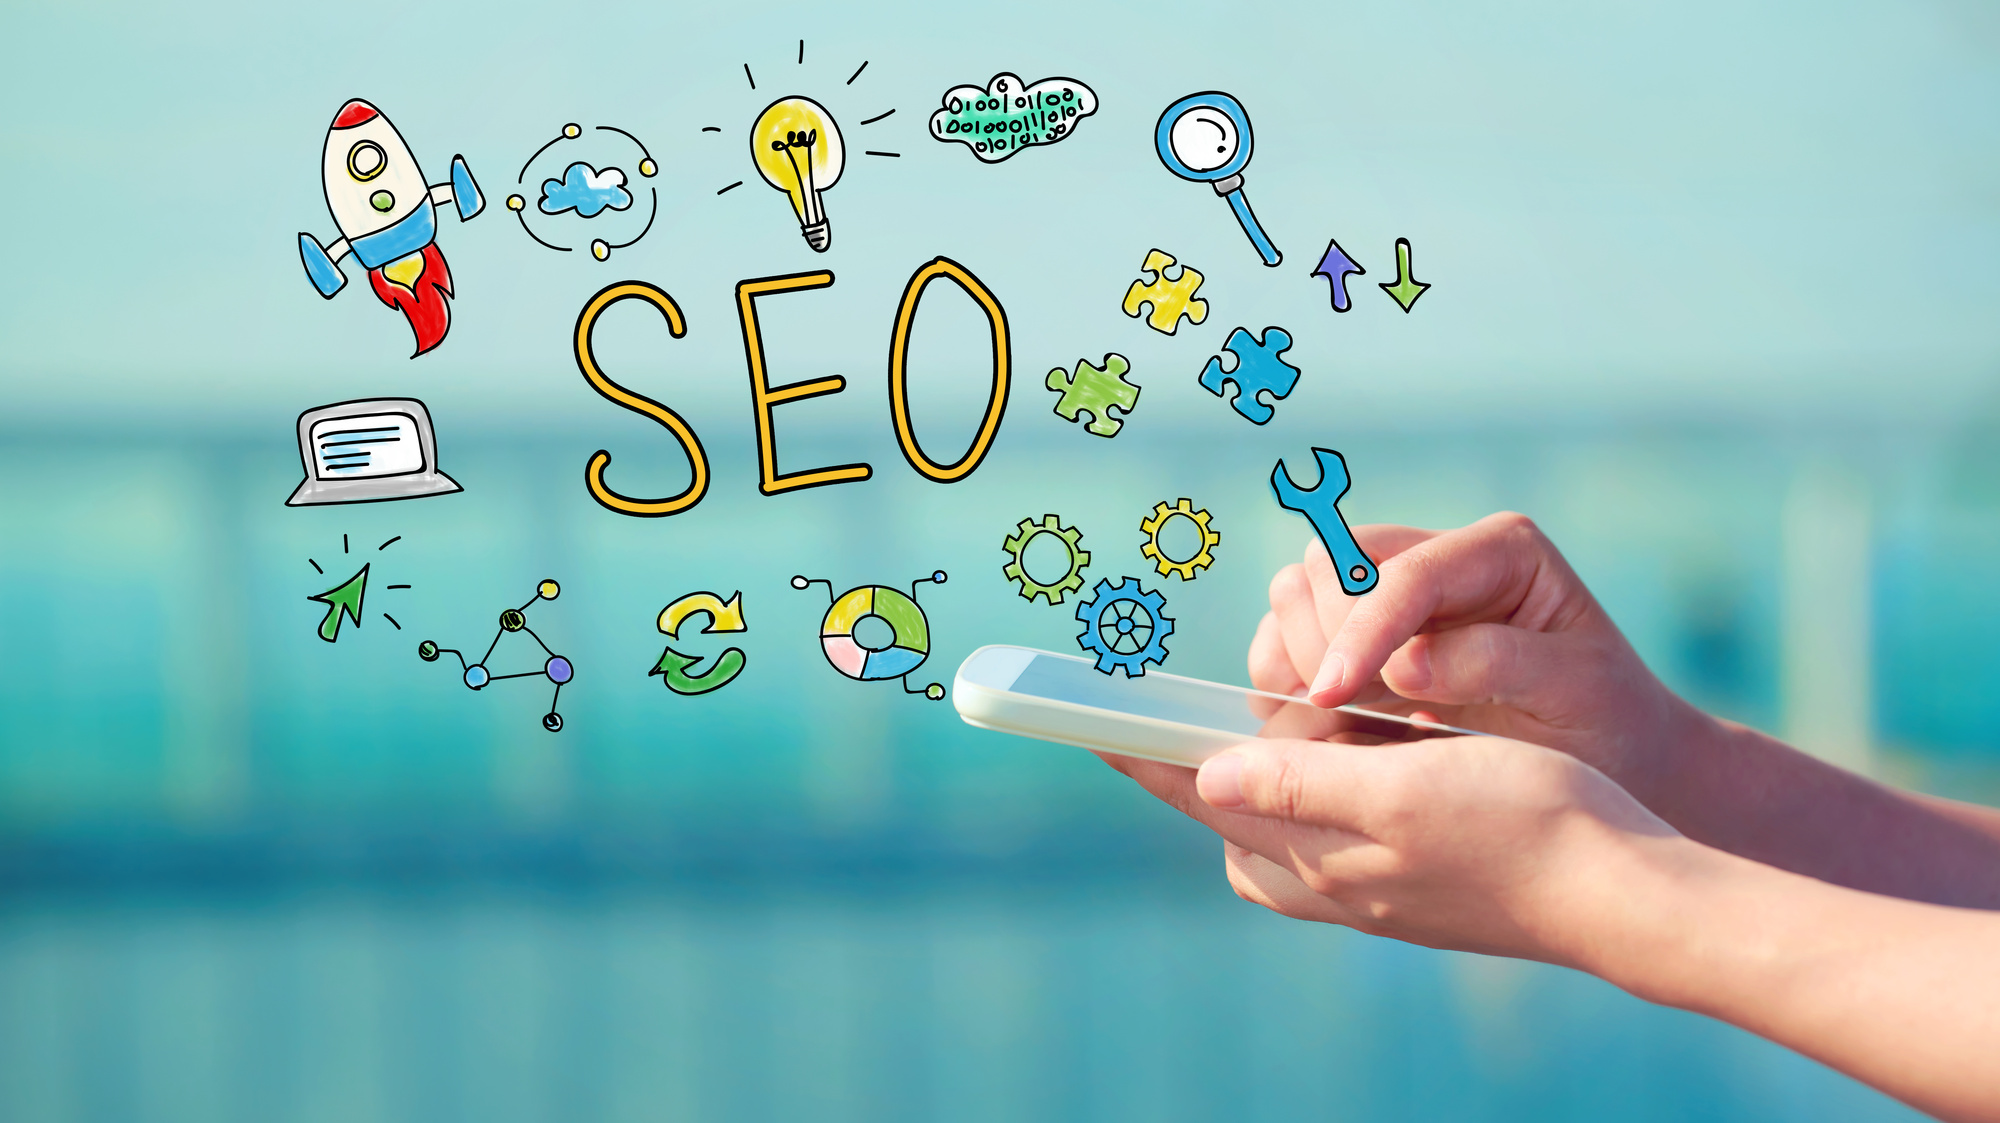 10 SEO Hacks Every Small Business Owner Should Know